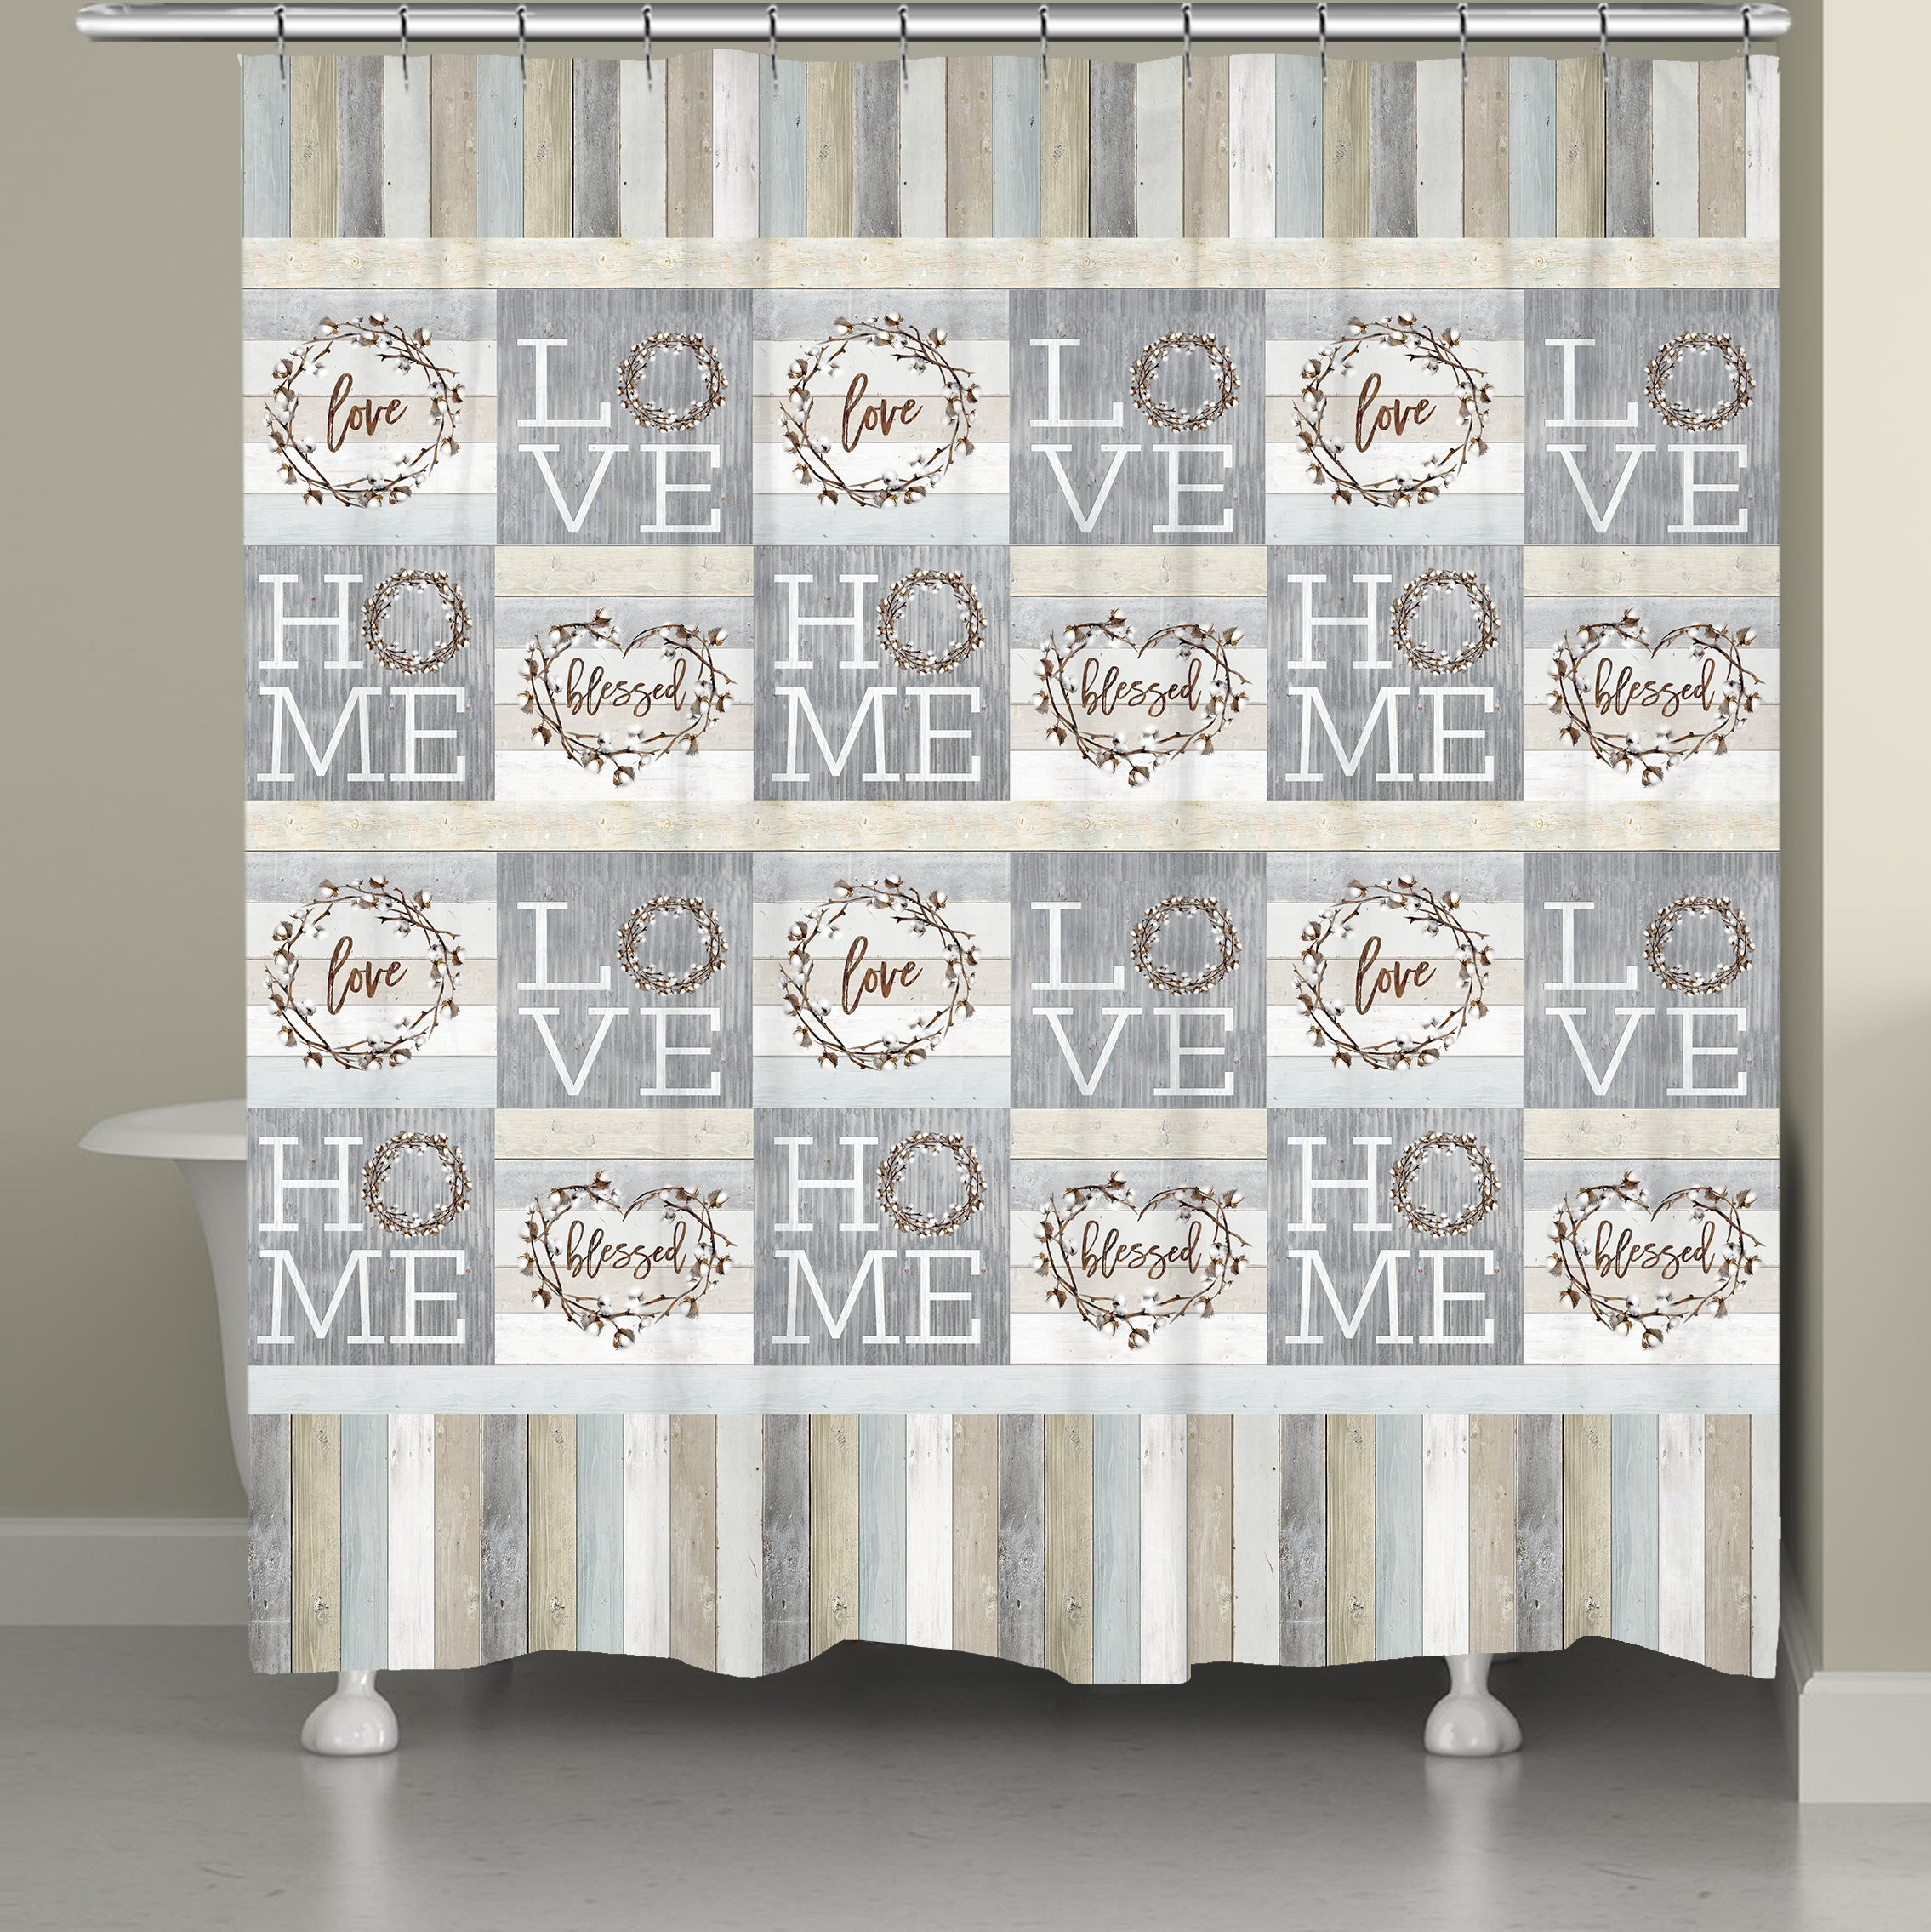 Loving Home Shower Curtain Laural Home